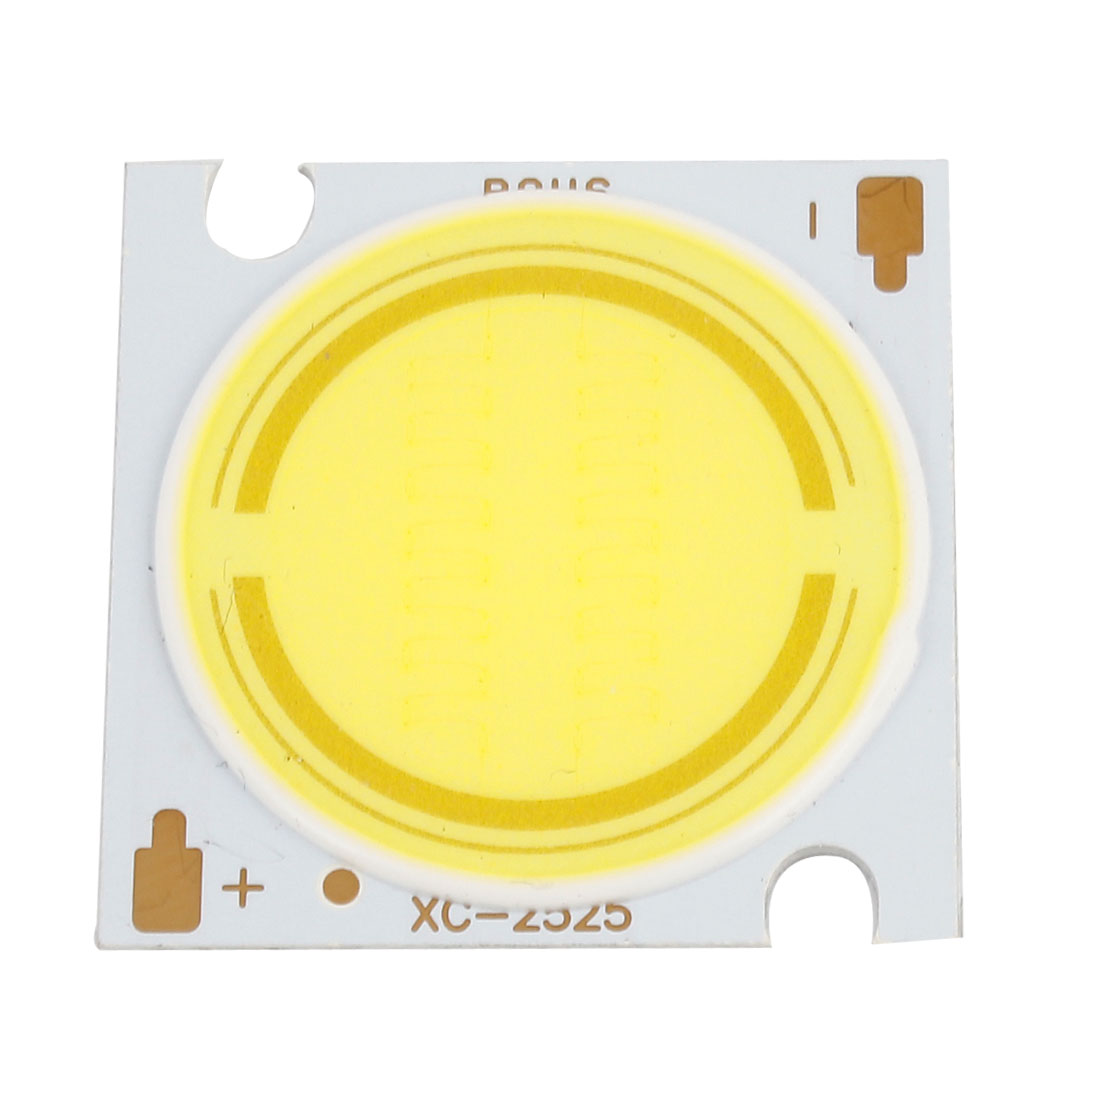 45-47V 15W Pure White Light High Power SMD COB LED Lamp Chip Bulb Emitter